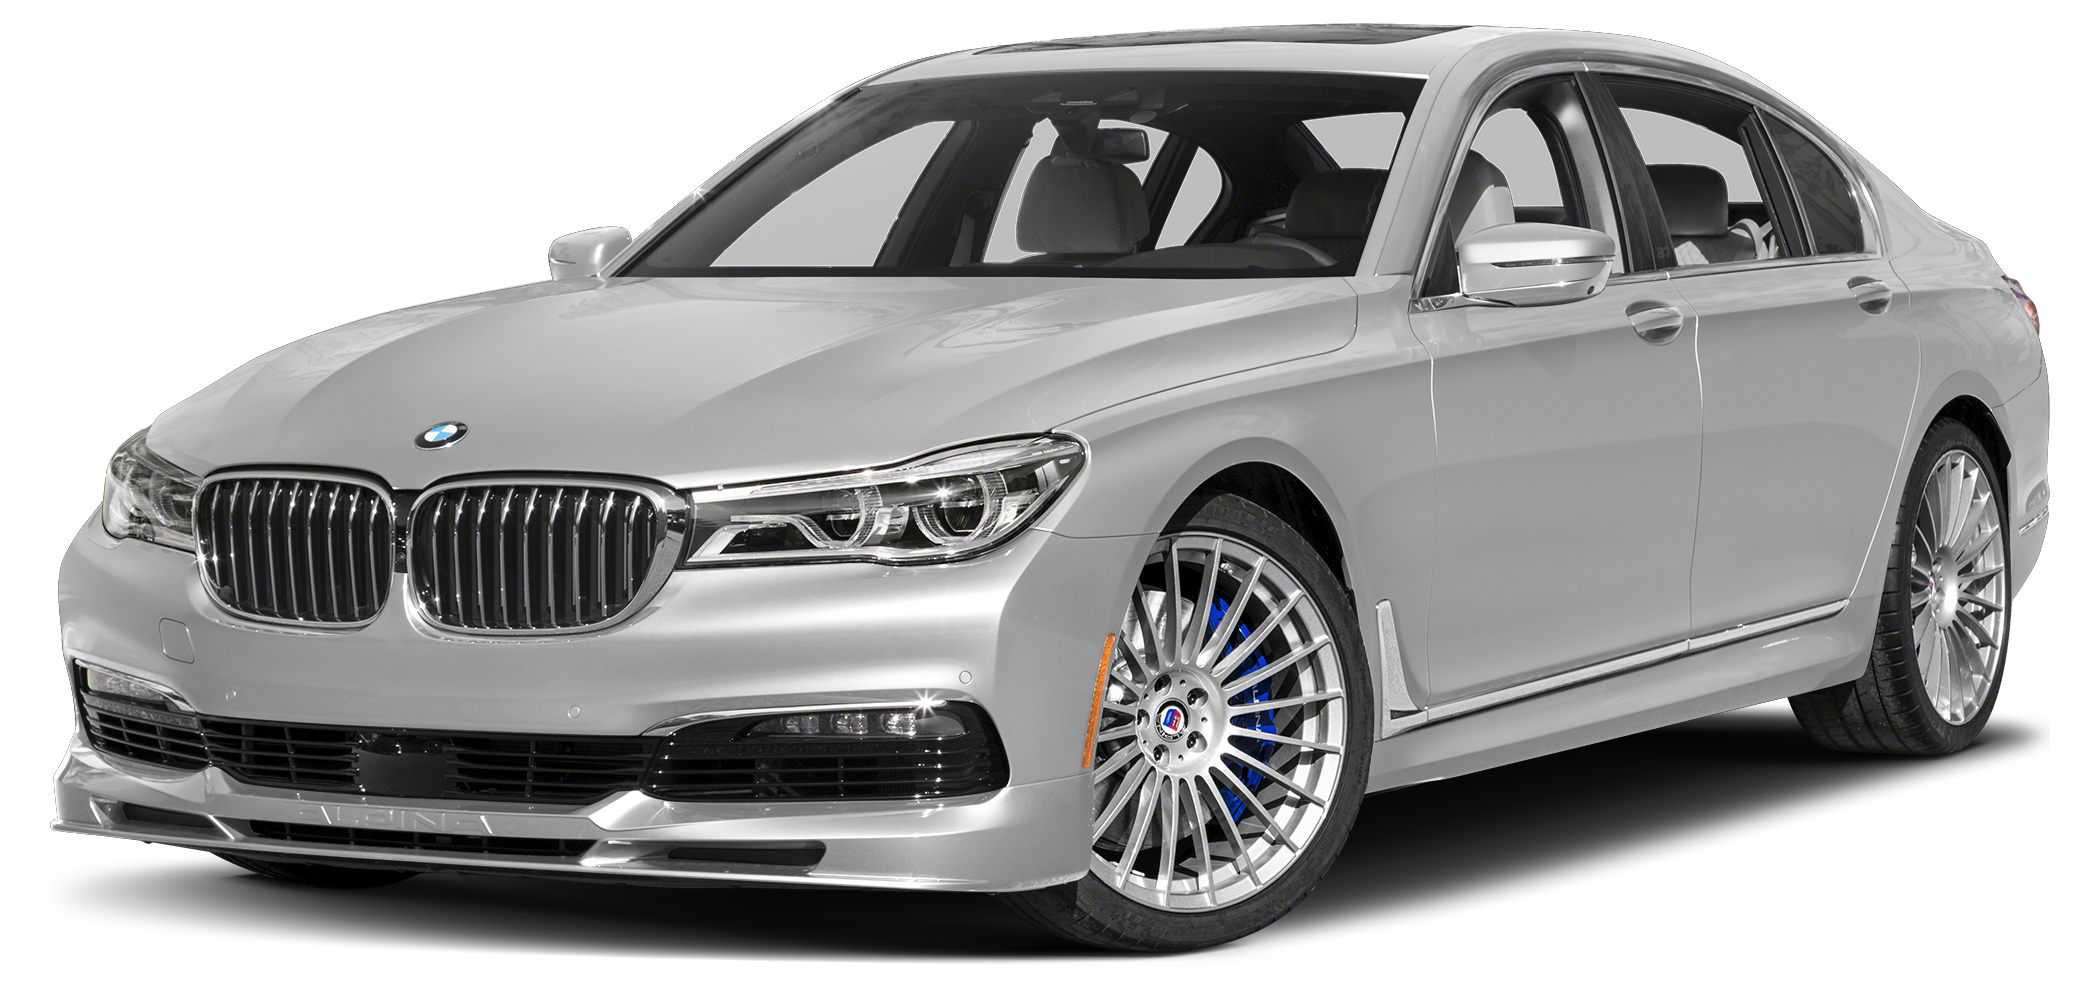 BMW ALPINA B For Sale In Grapevine TX WBAFCJG - 2018 bmw alpina b7 price